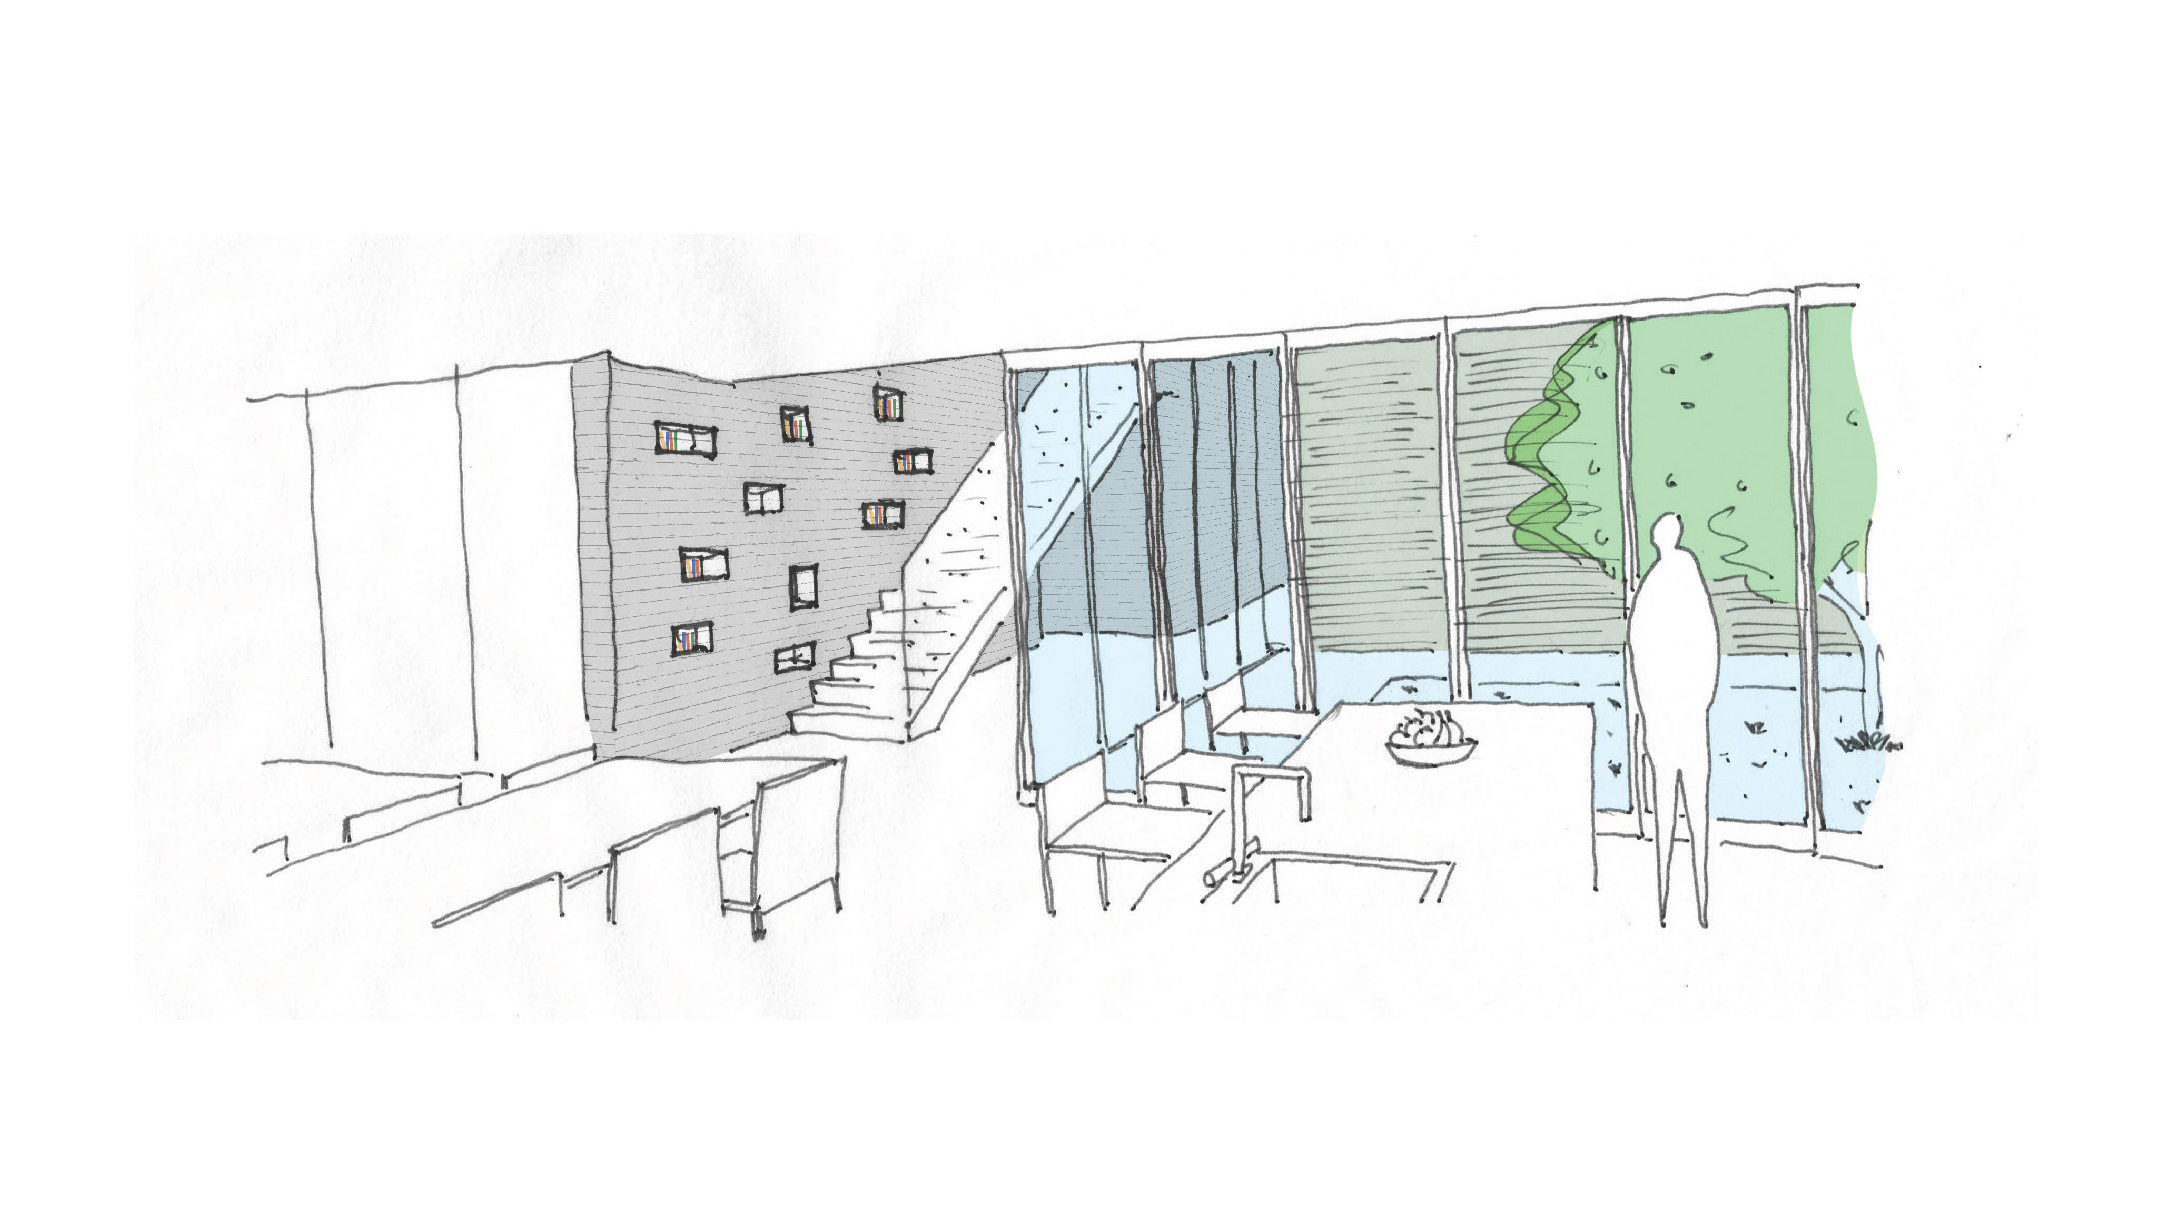 Concept sketch of interior courtyard and atrium space.